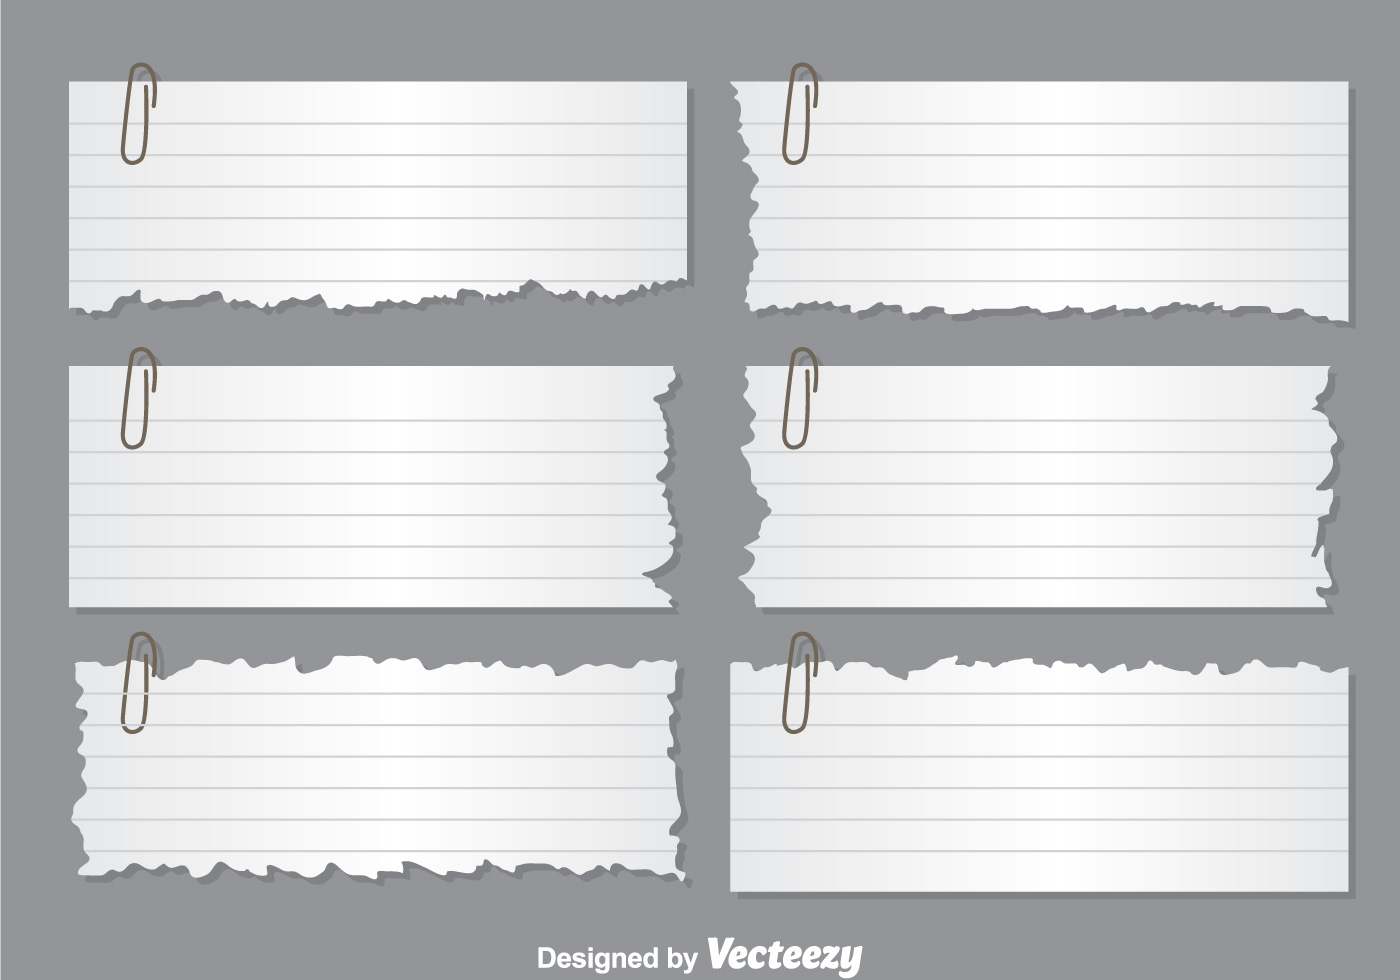 ripped paper note vectors - download free vector art, stock graphics